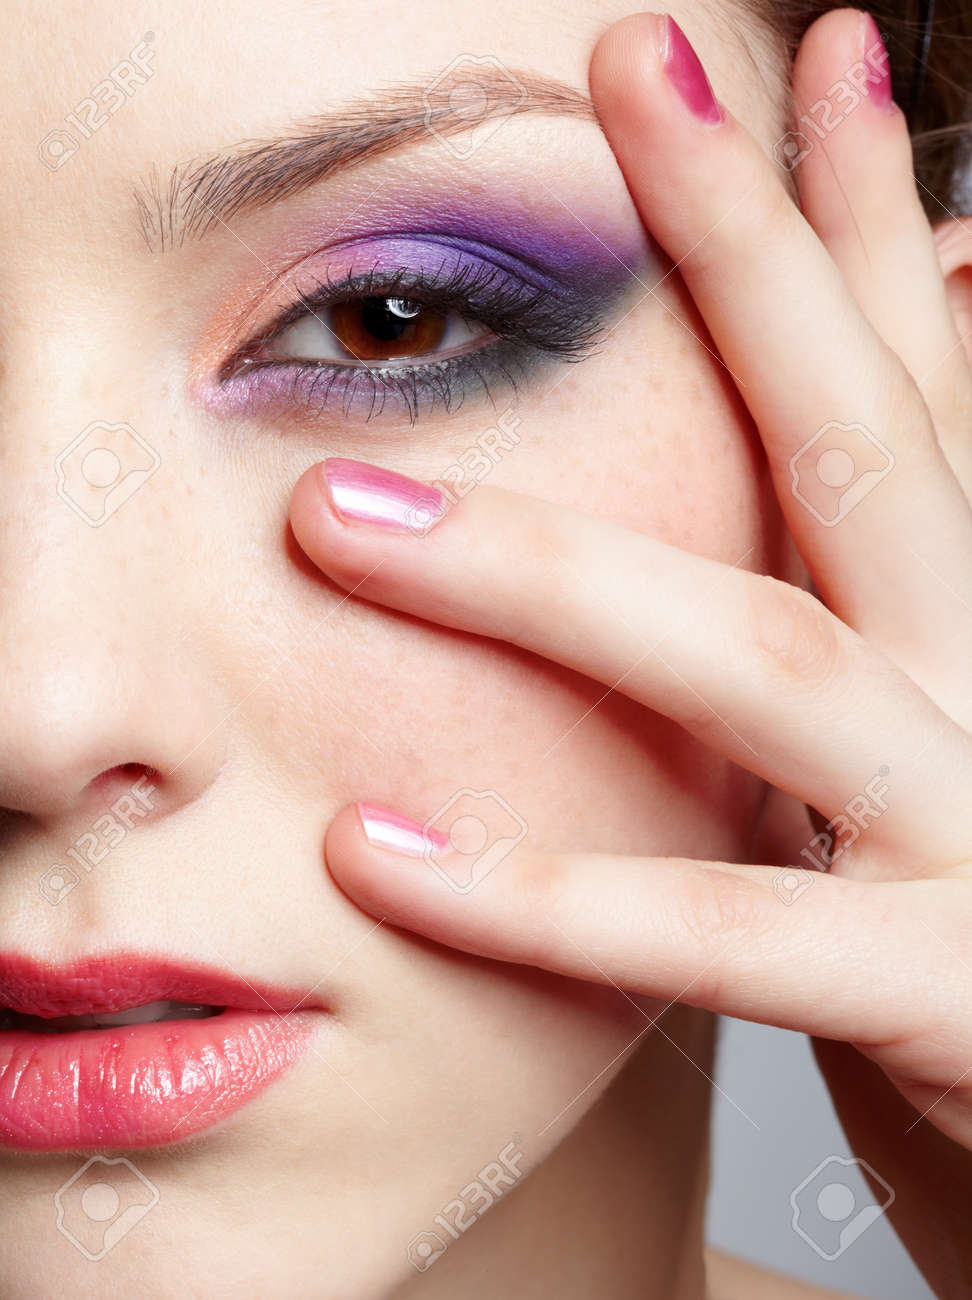 close-up half-face portrait of young beautiful woman with violet eye shadow touching her face with manicured hand Stock Photo - 12341941